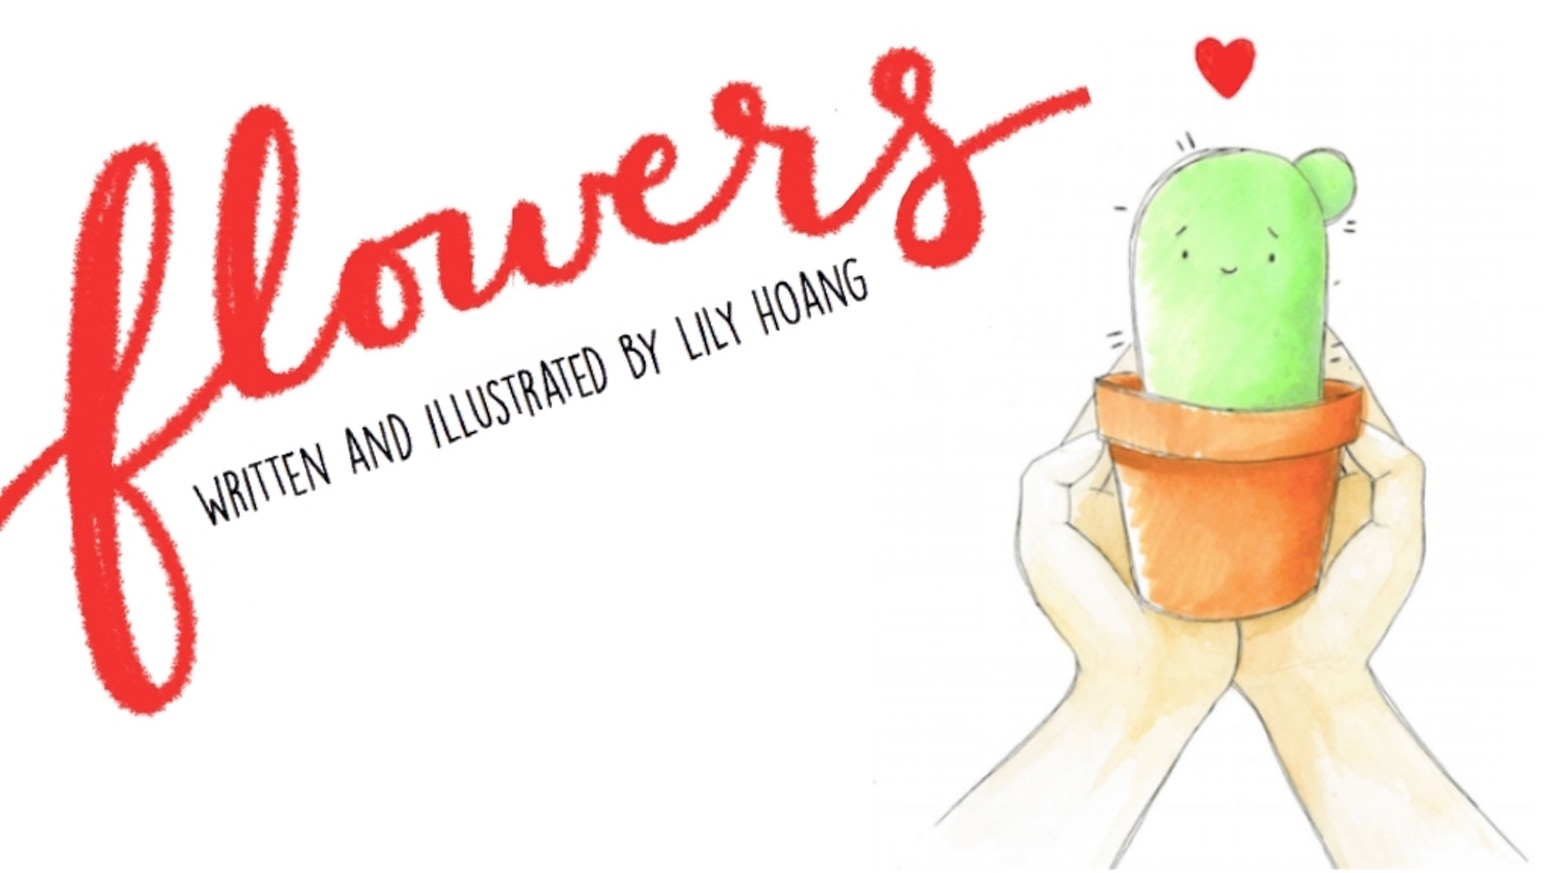 Flowers By Lily Hoang Kickstarter